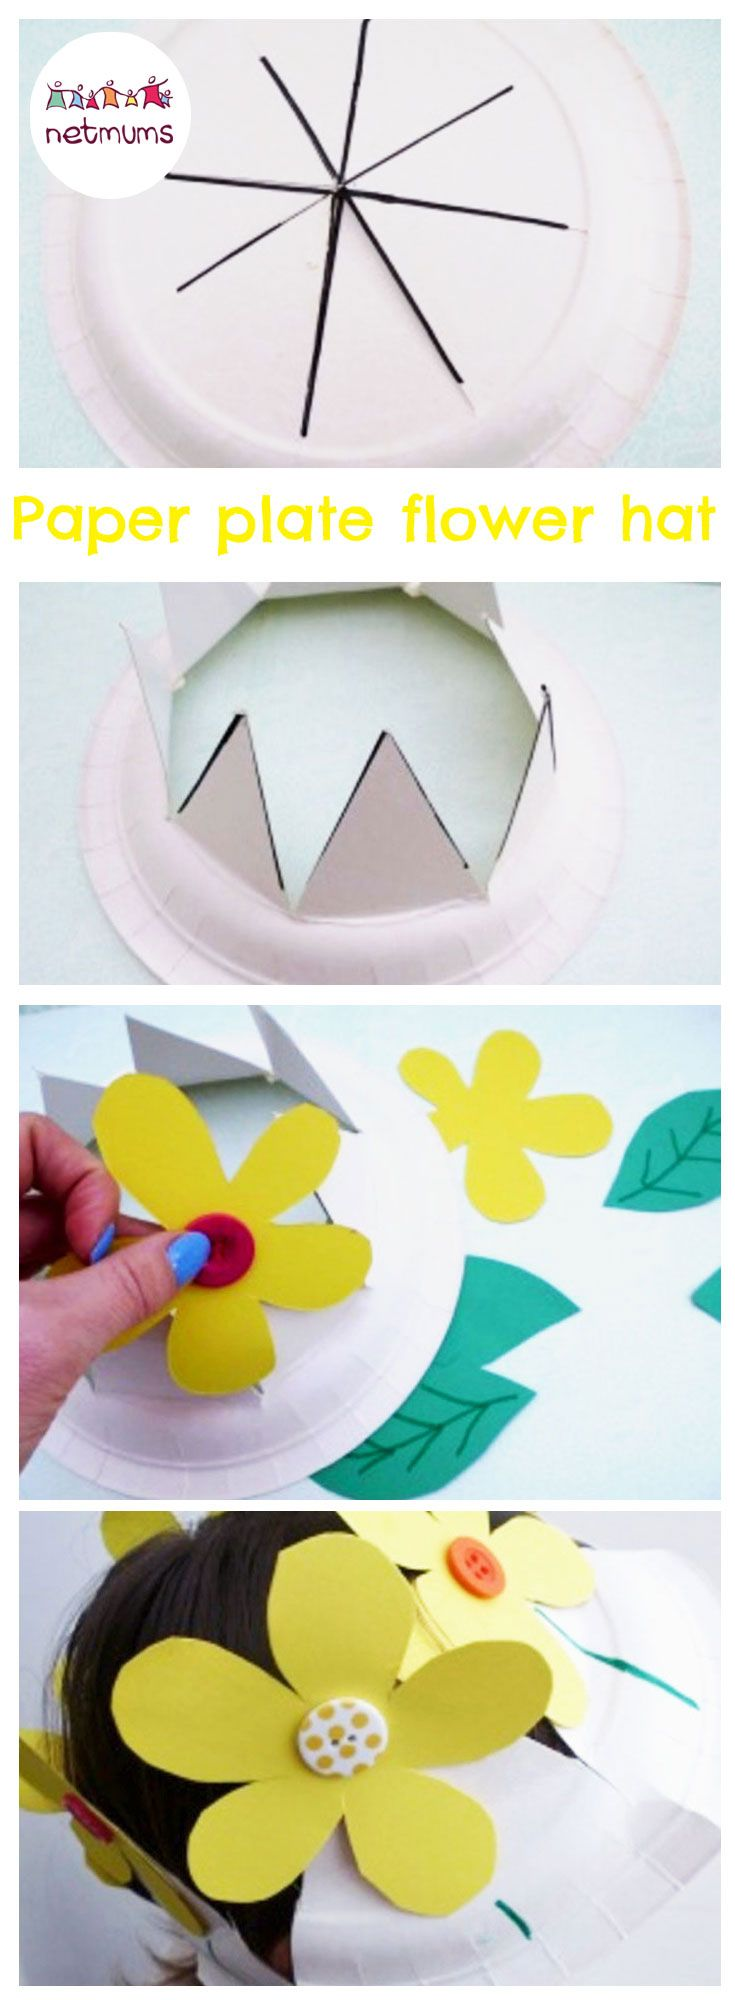 Make this super cute Easter bonnet in minutes. All you need is a paper plate and some card to whip up a gorgeous Easter bonnet.